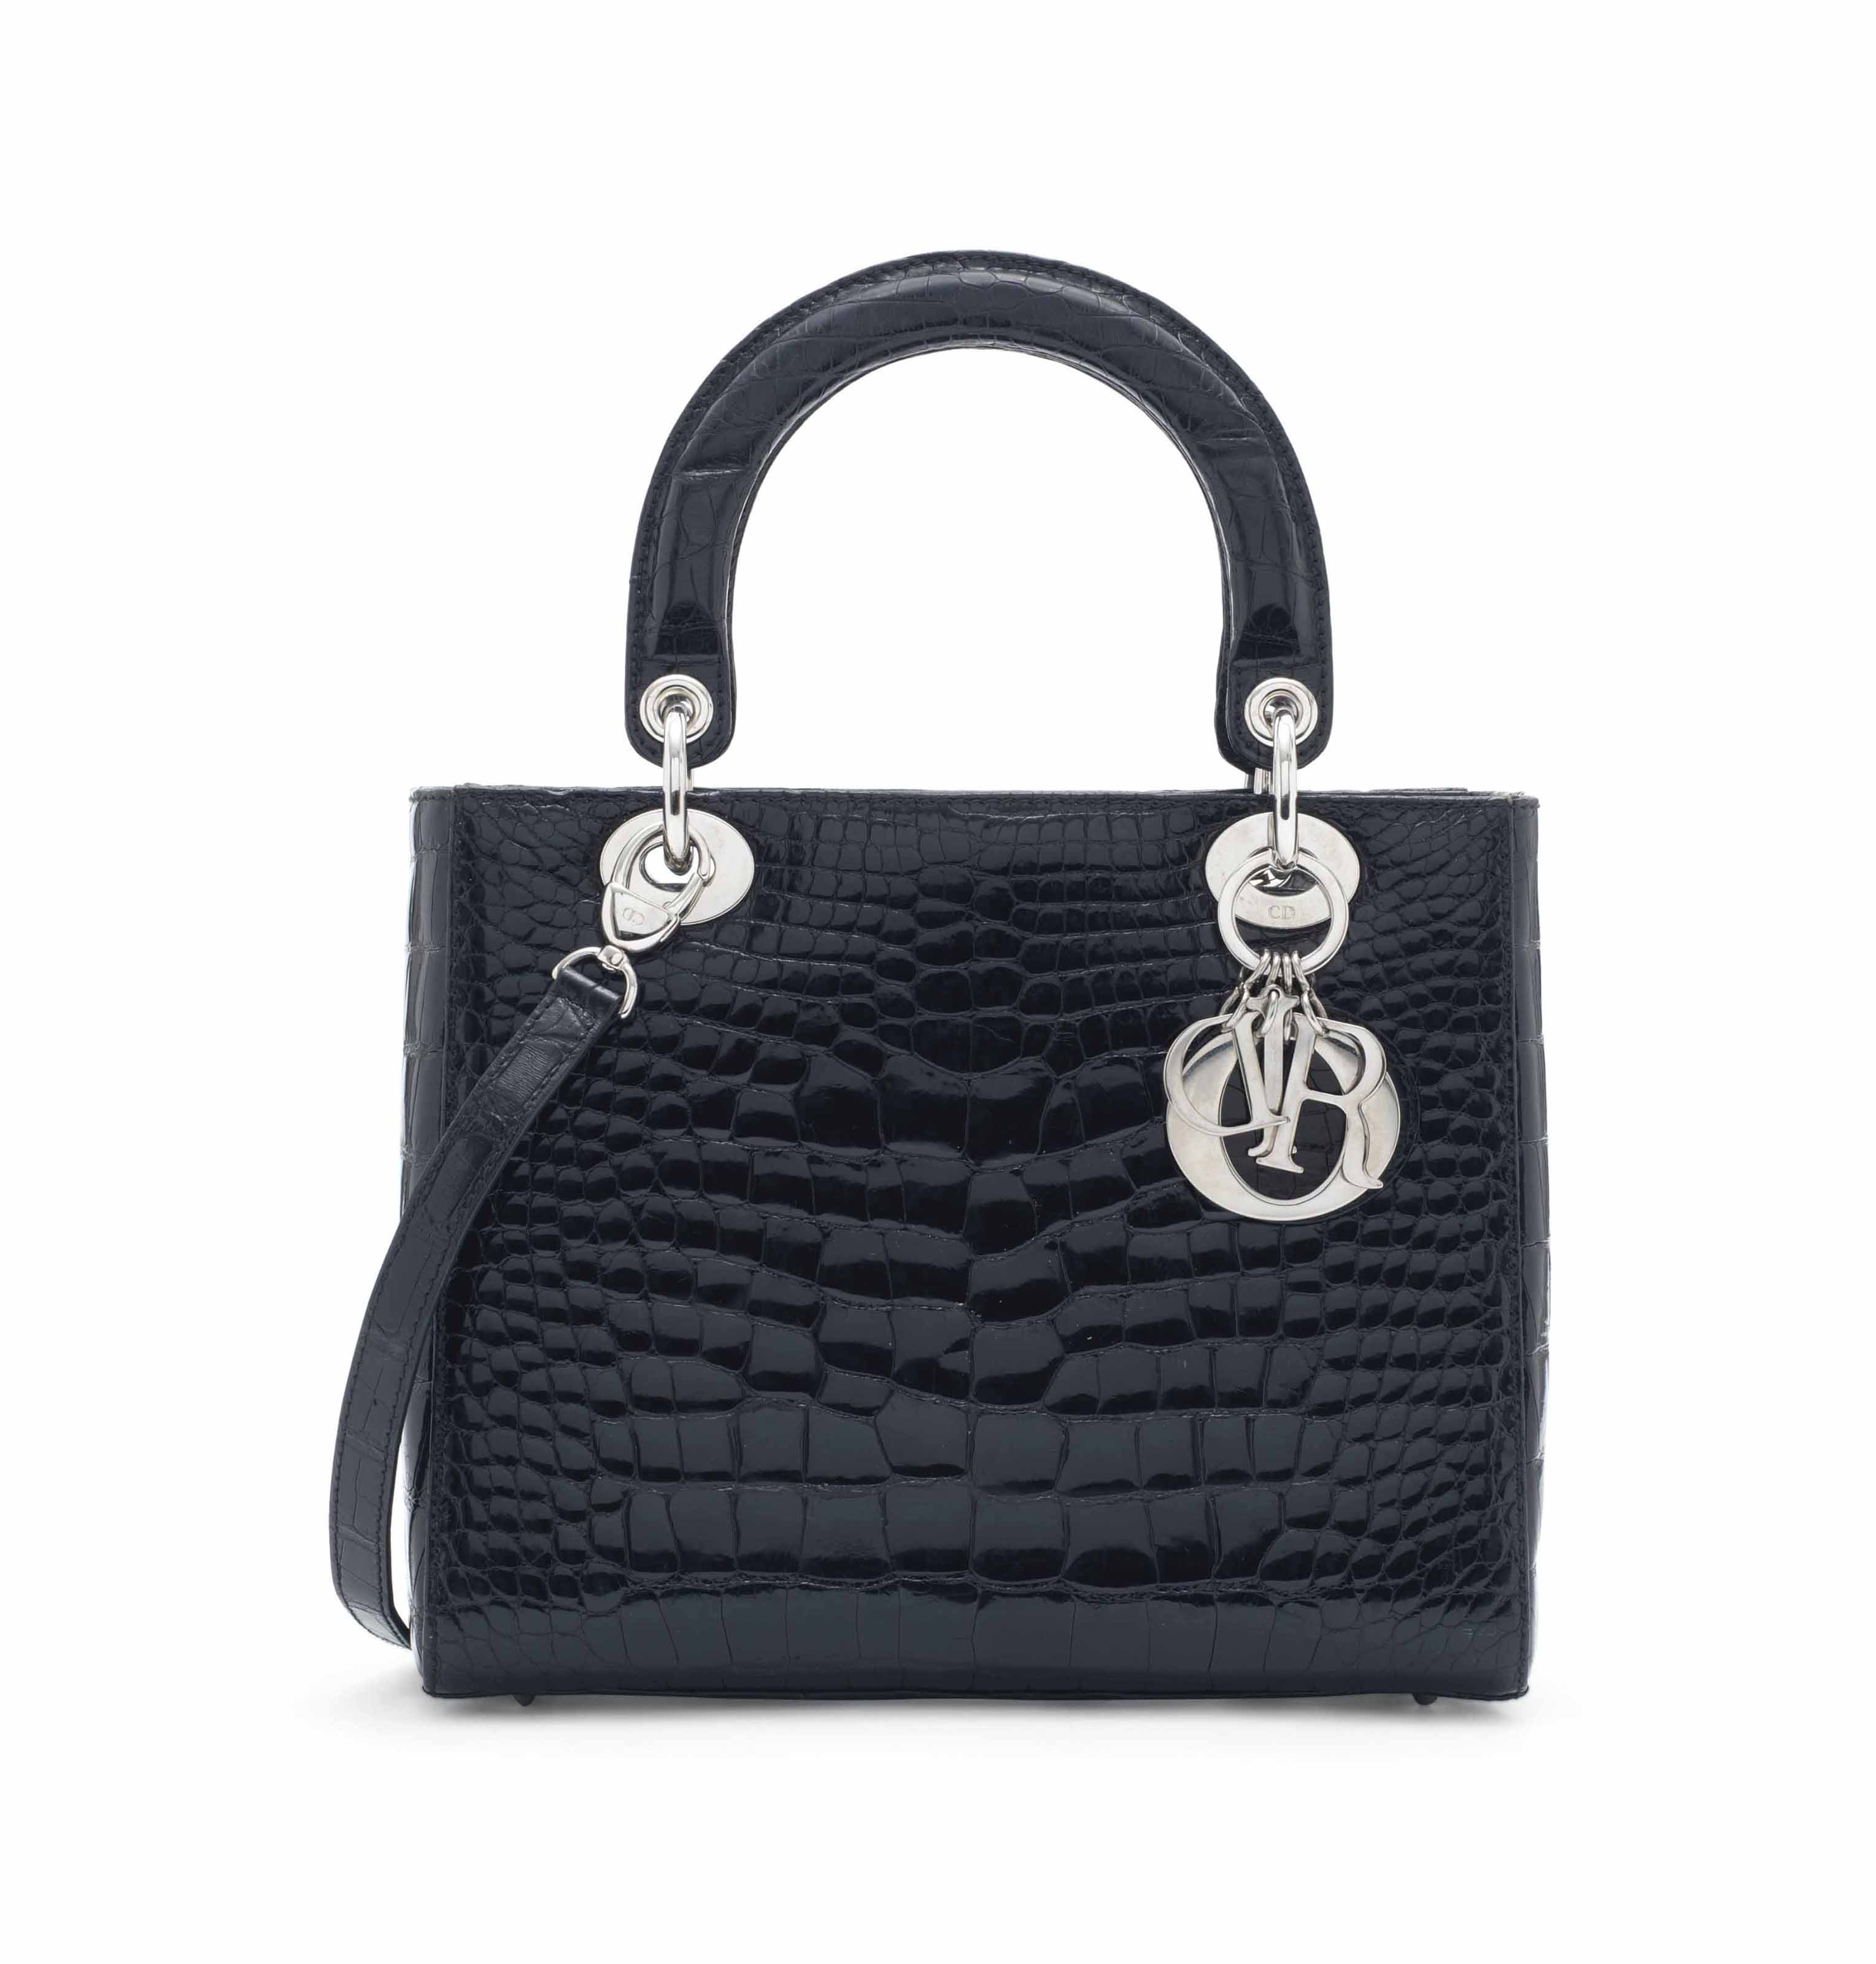 A shiny black alligator Lady Dior with silver hardware 714ebac5204e9